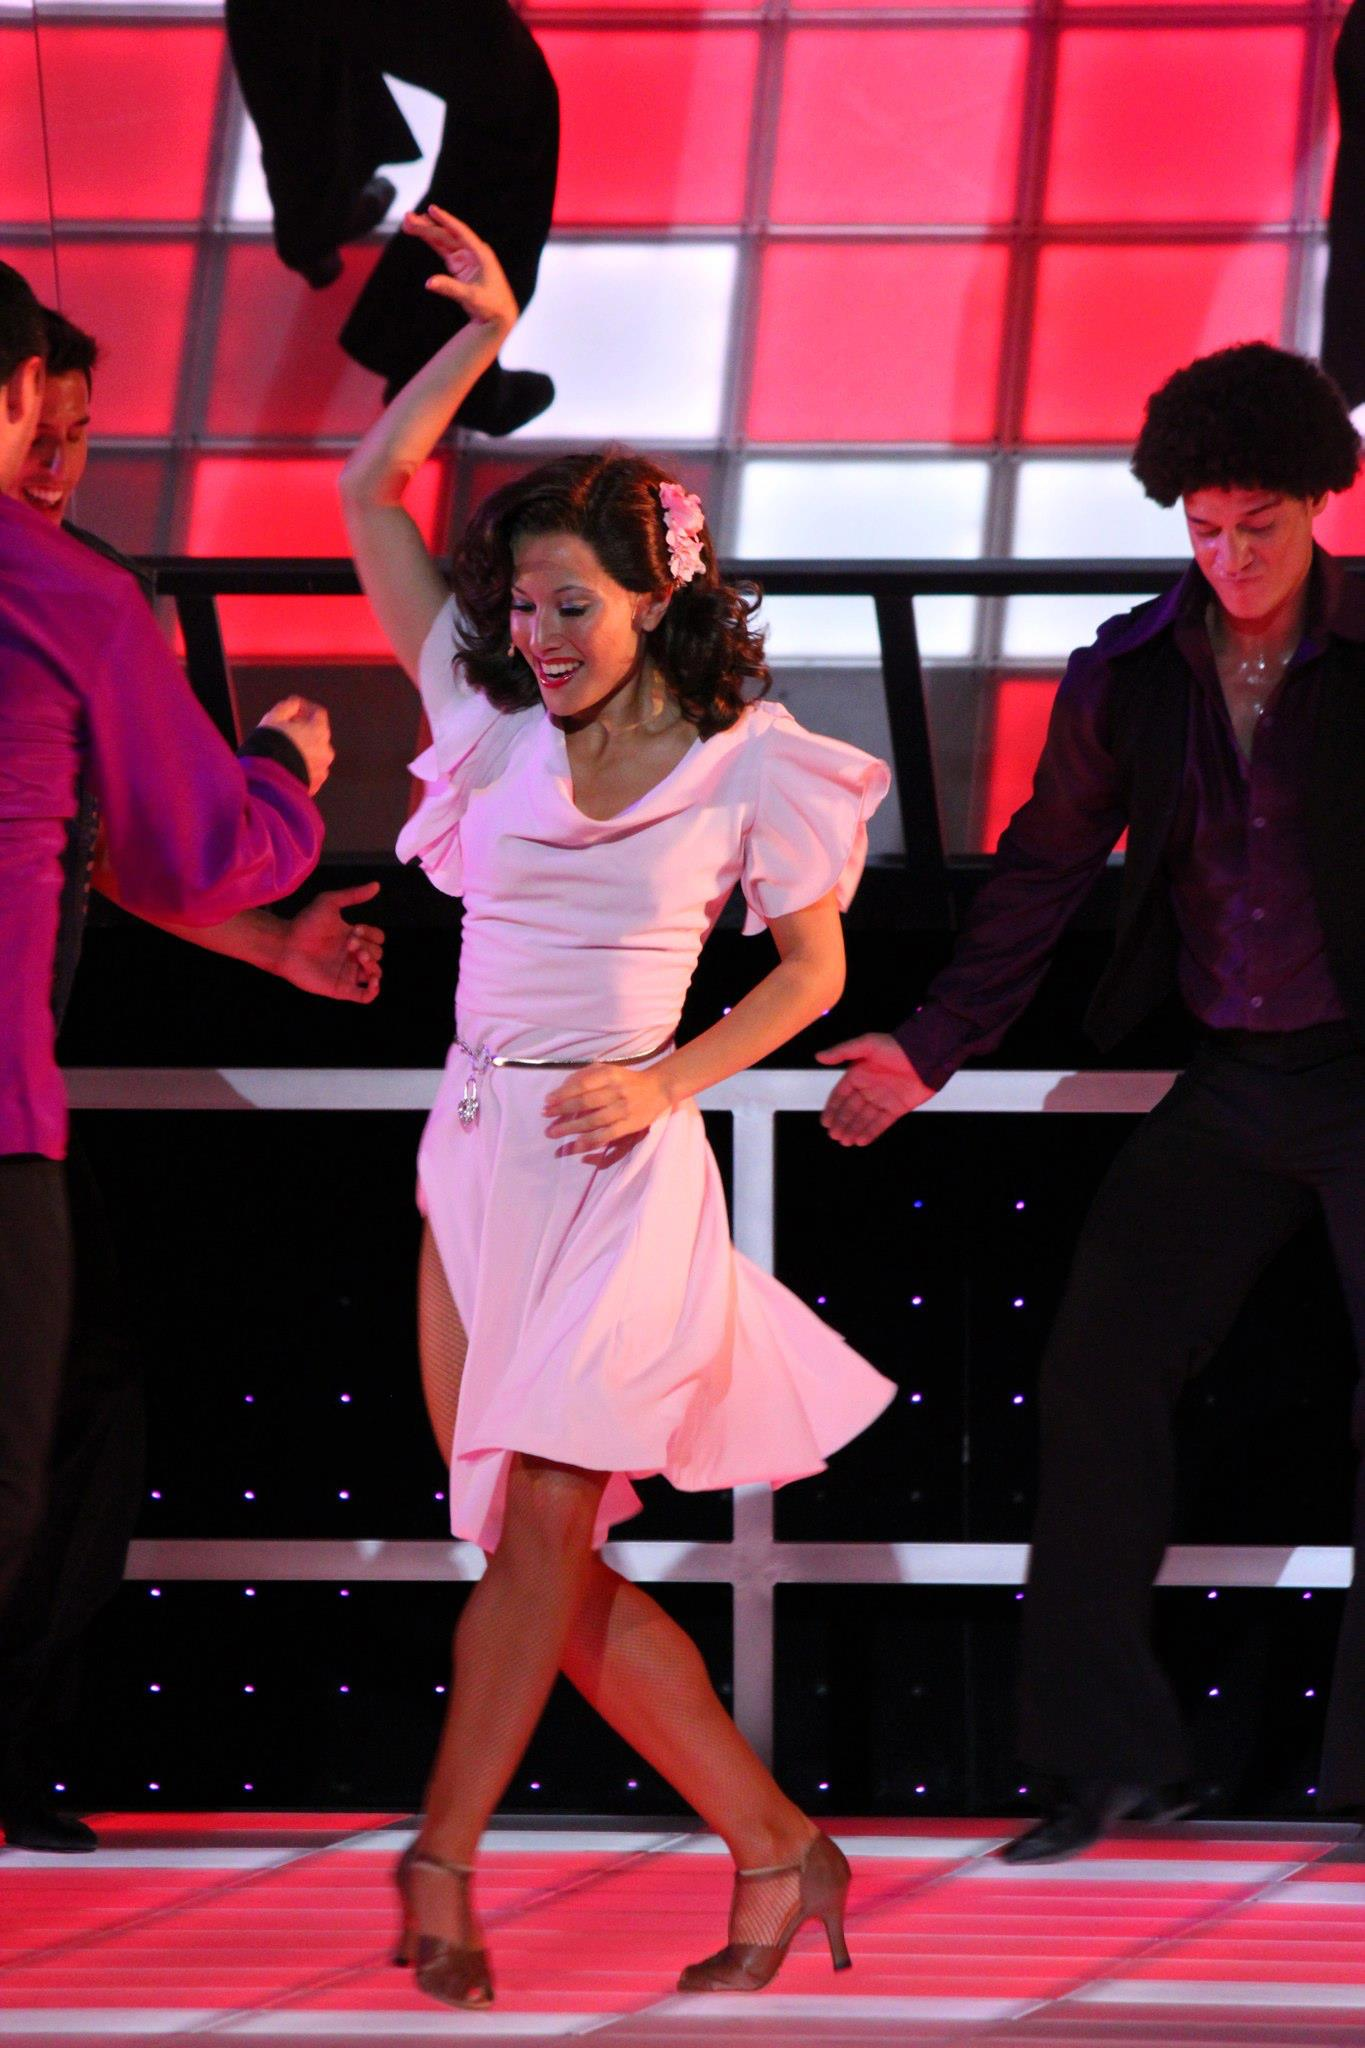 Celia Mei Rubin performing during Saturday Night Fever